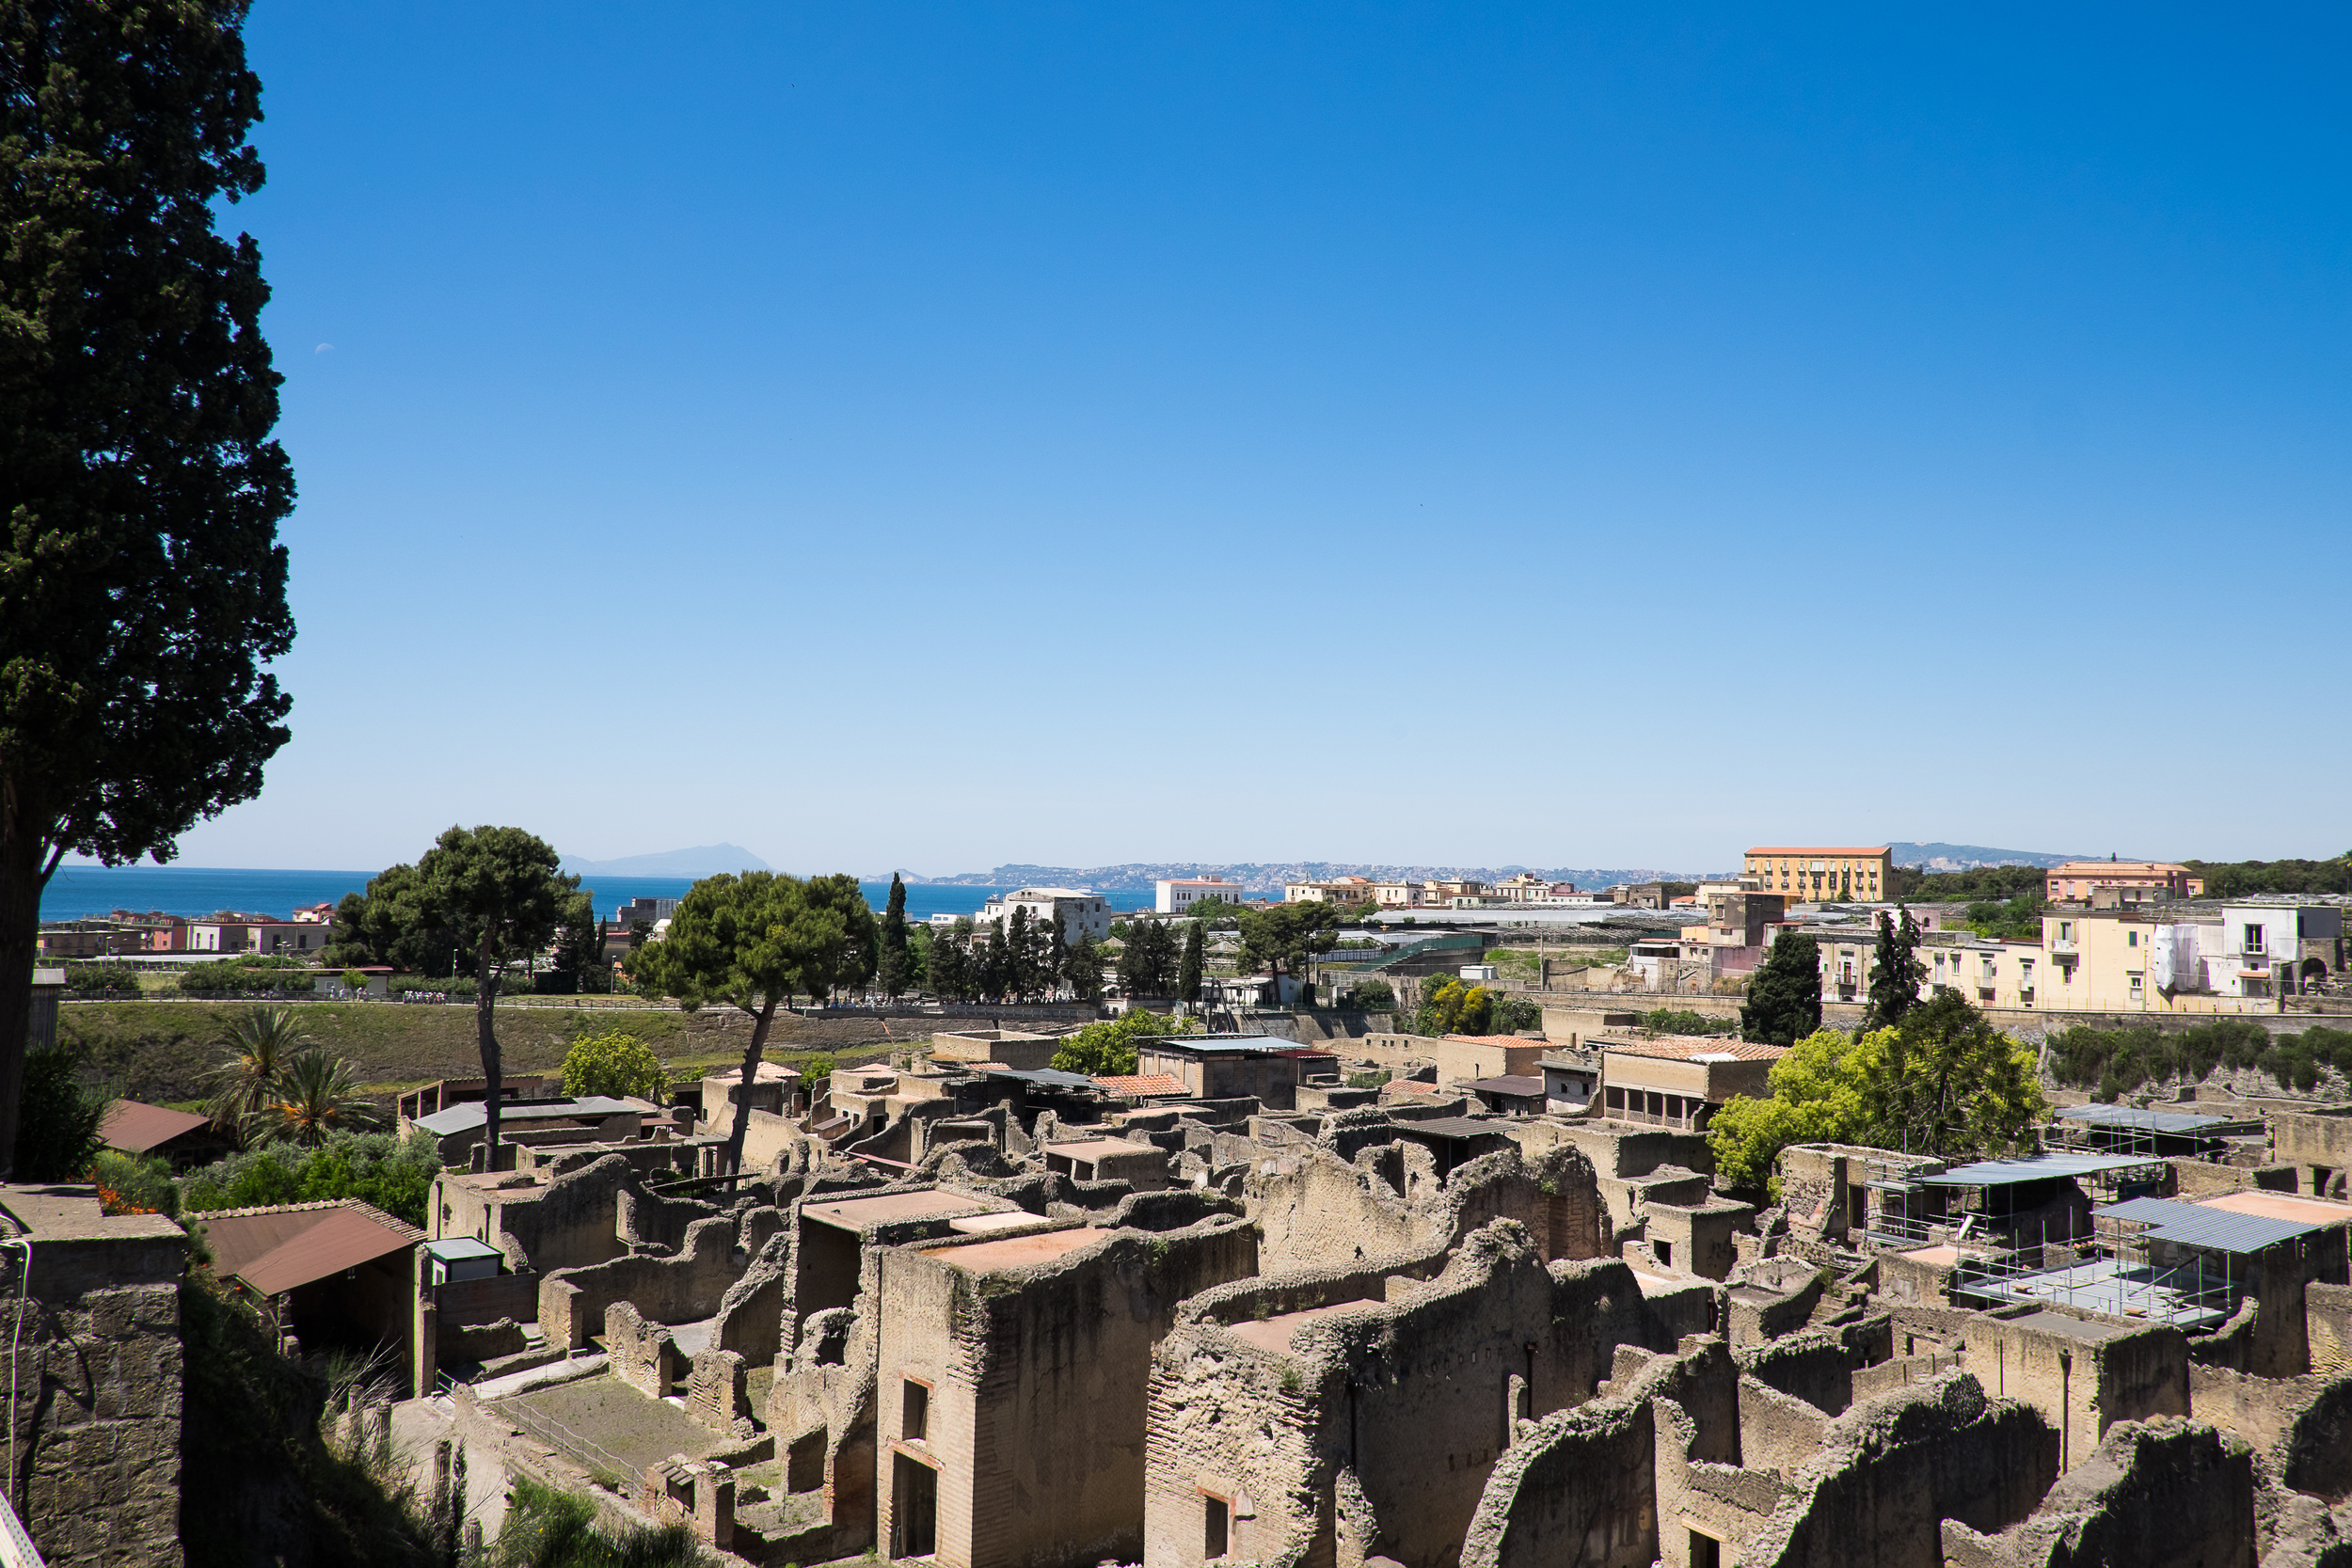 This view looks out to the Bay of Naples, which at the time of Herculaneum's existence, came all the way up to the city itself.